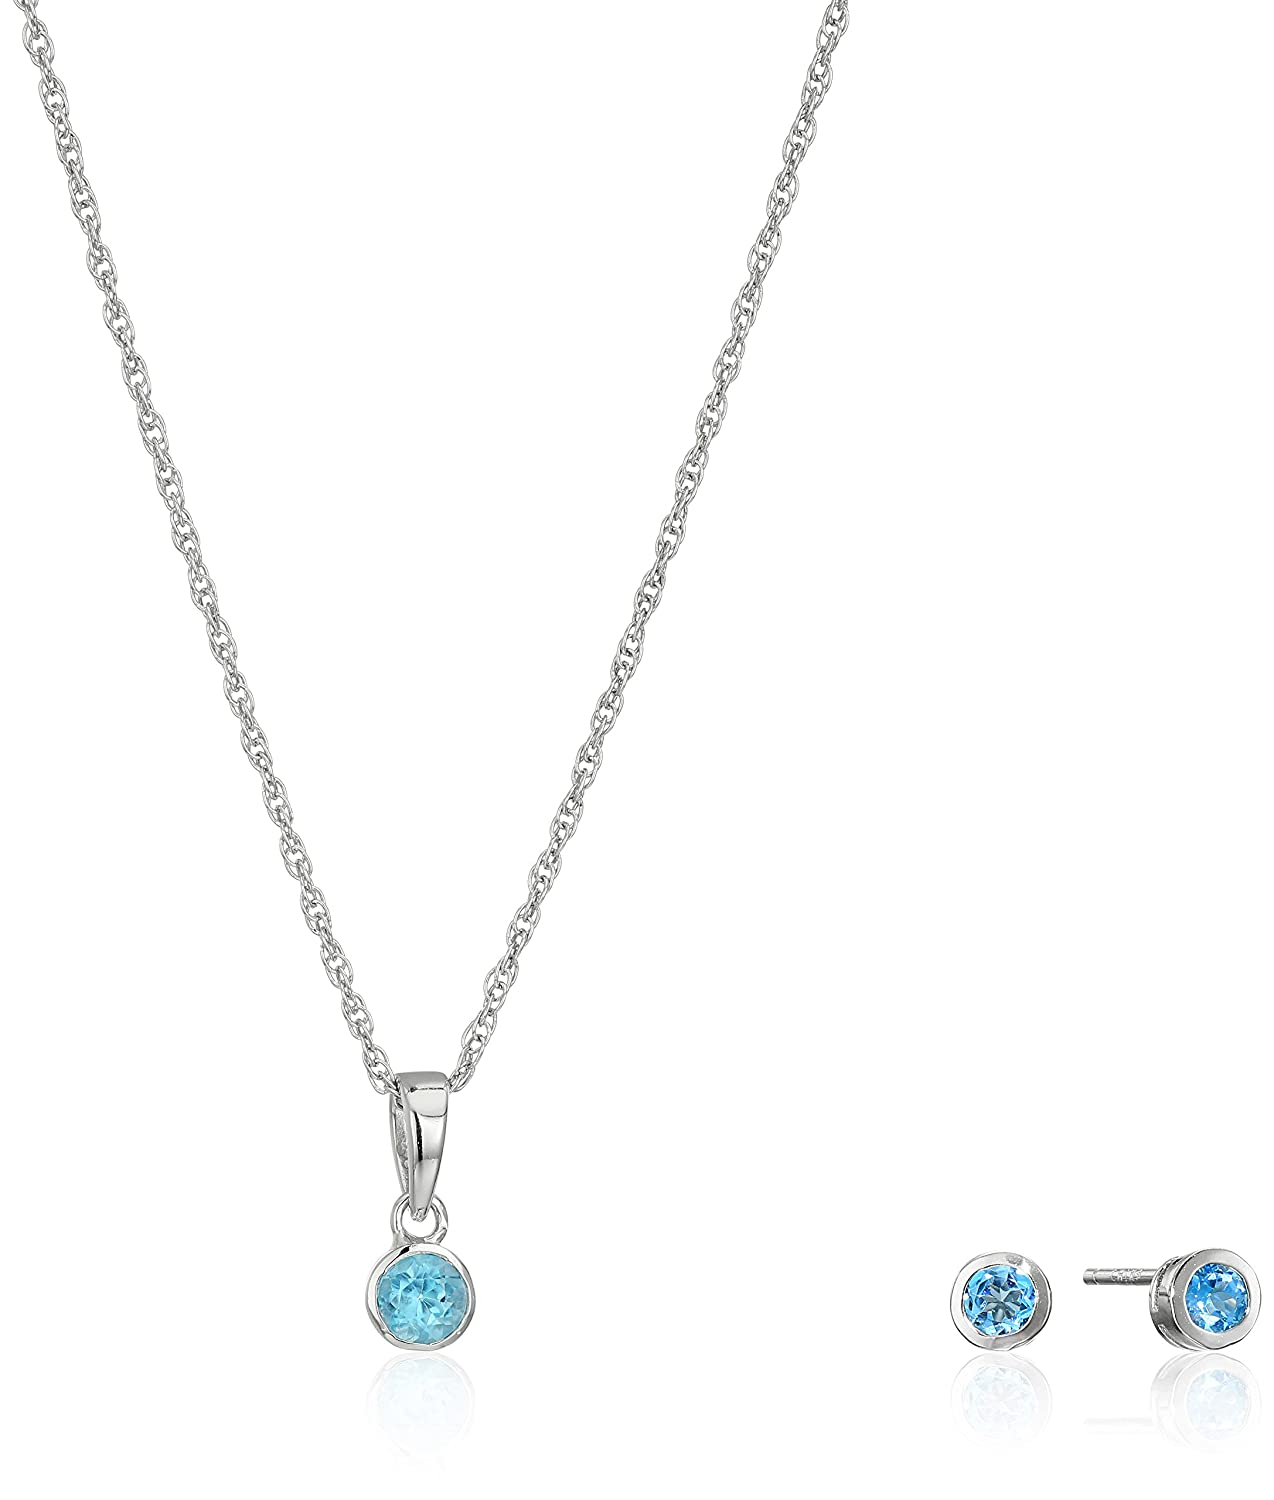 Girls' Lulabelle Children's Rhodium Plated Sterling Silver 3mm Bezel Set Stud Earrings and Pendant Necklace Jewelry Set, 16 16 Amazon Collection R9AA2B120Q